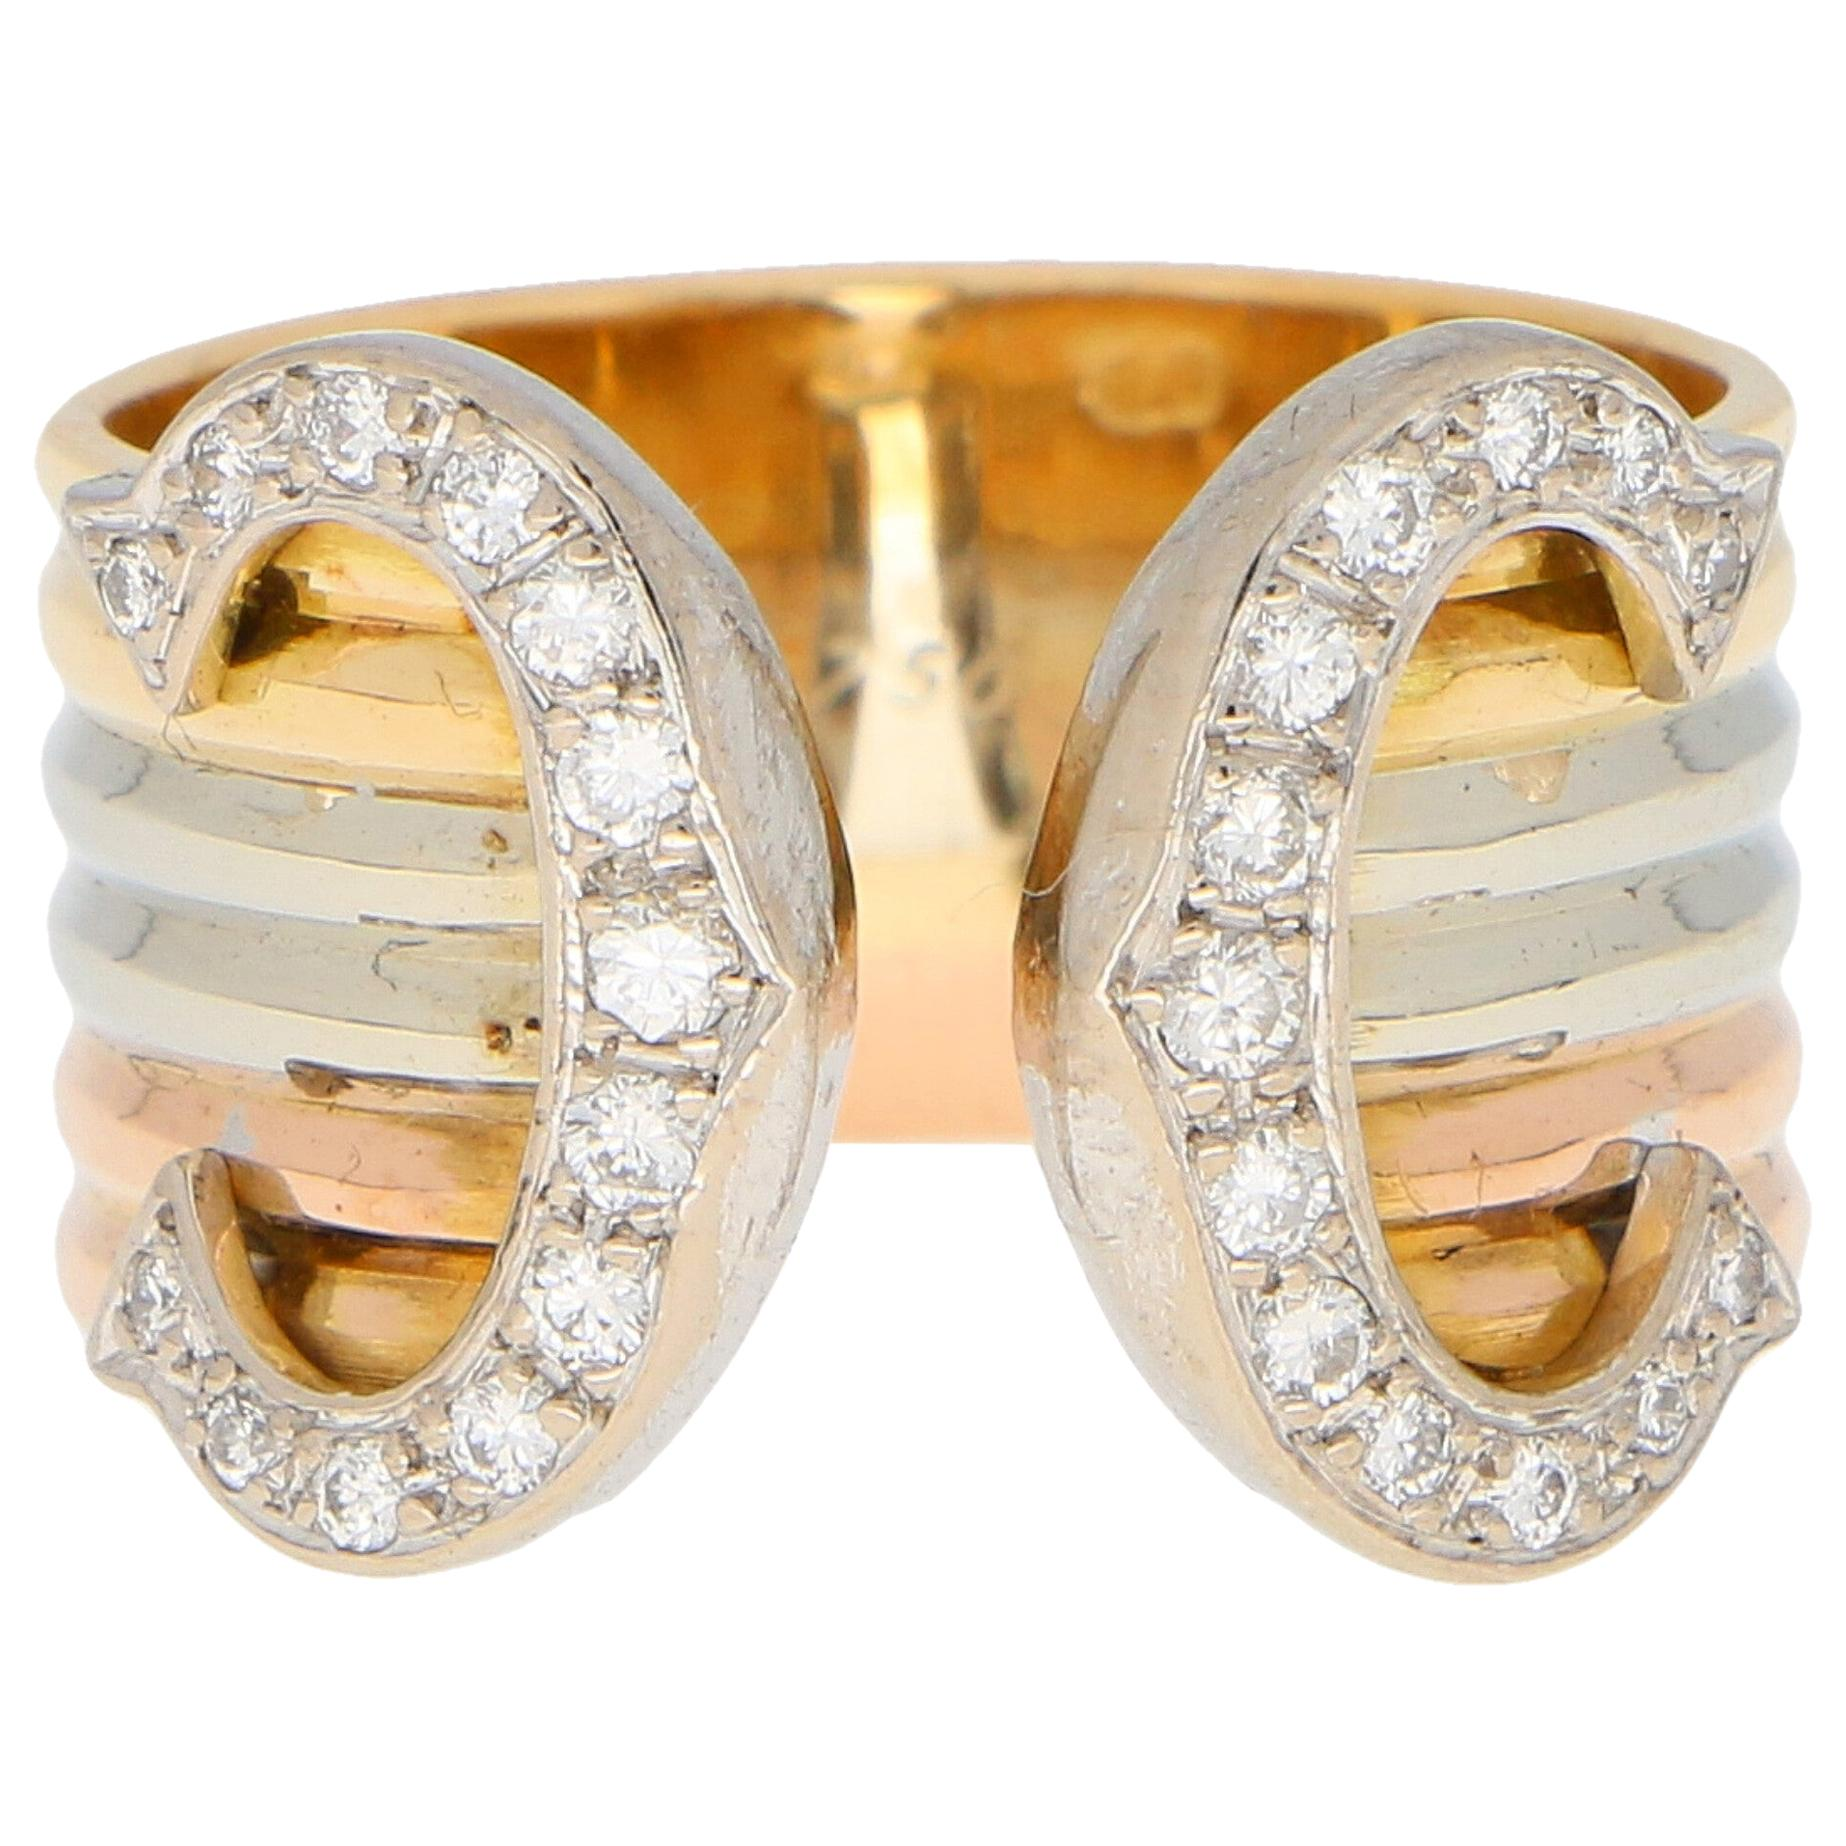 C de Cartier Diamond Trinity Band Ring Set in 18k Yellow, White and Rose Gold